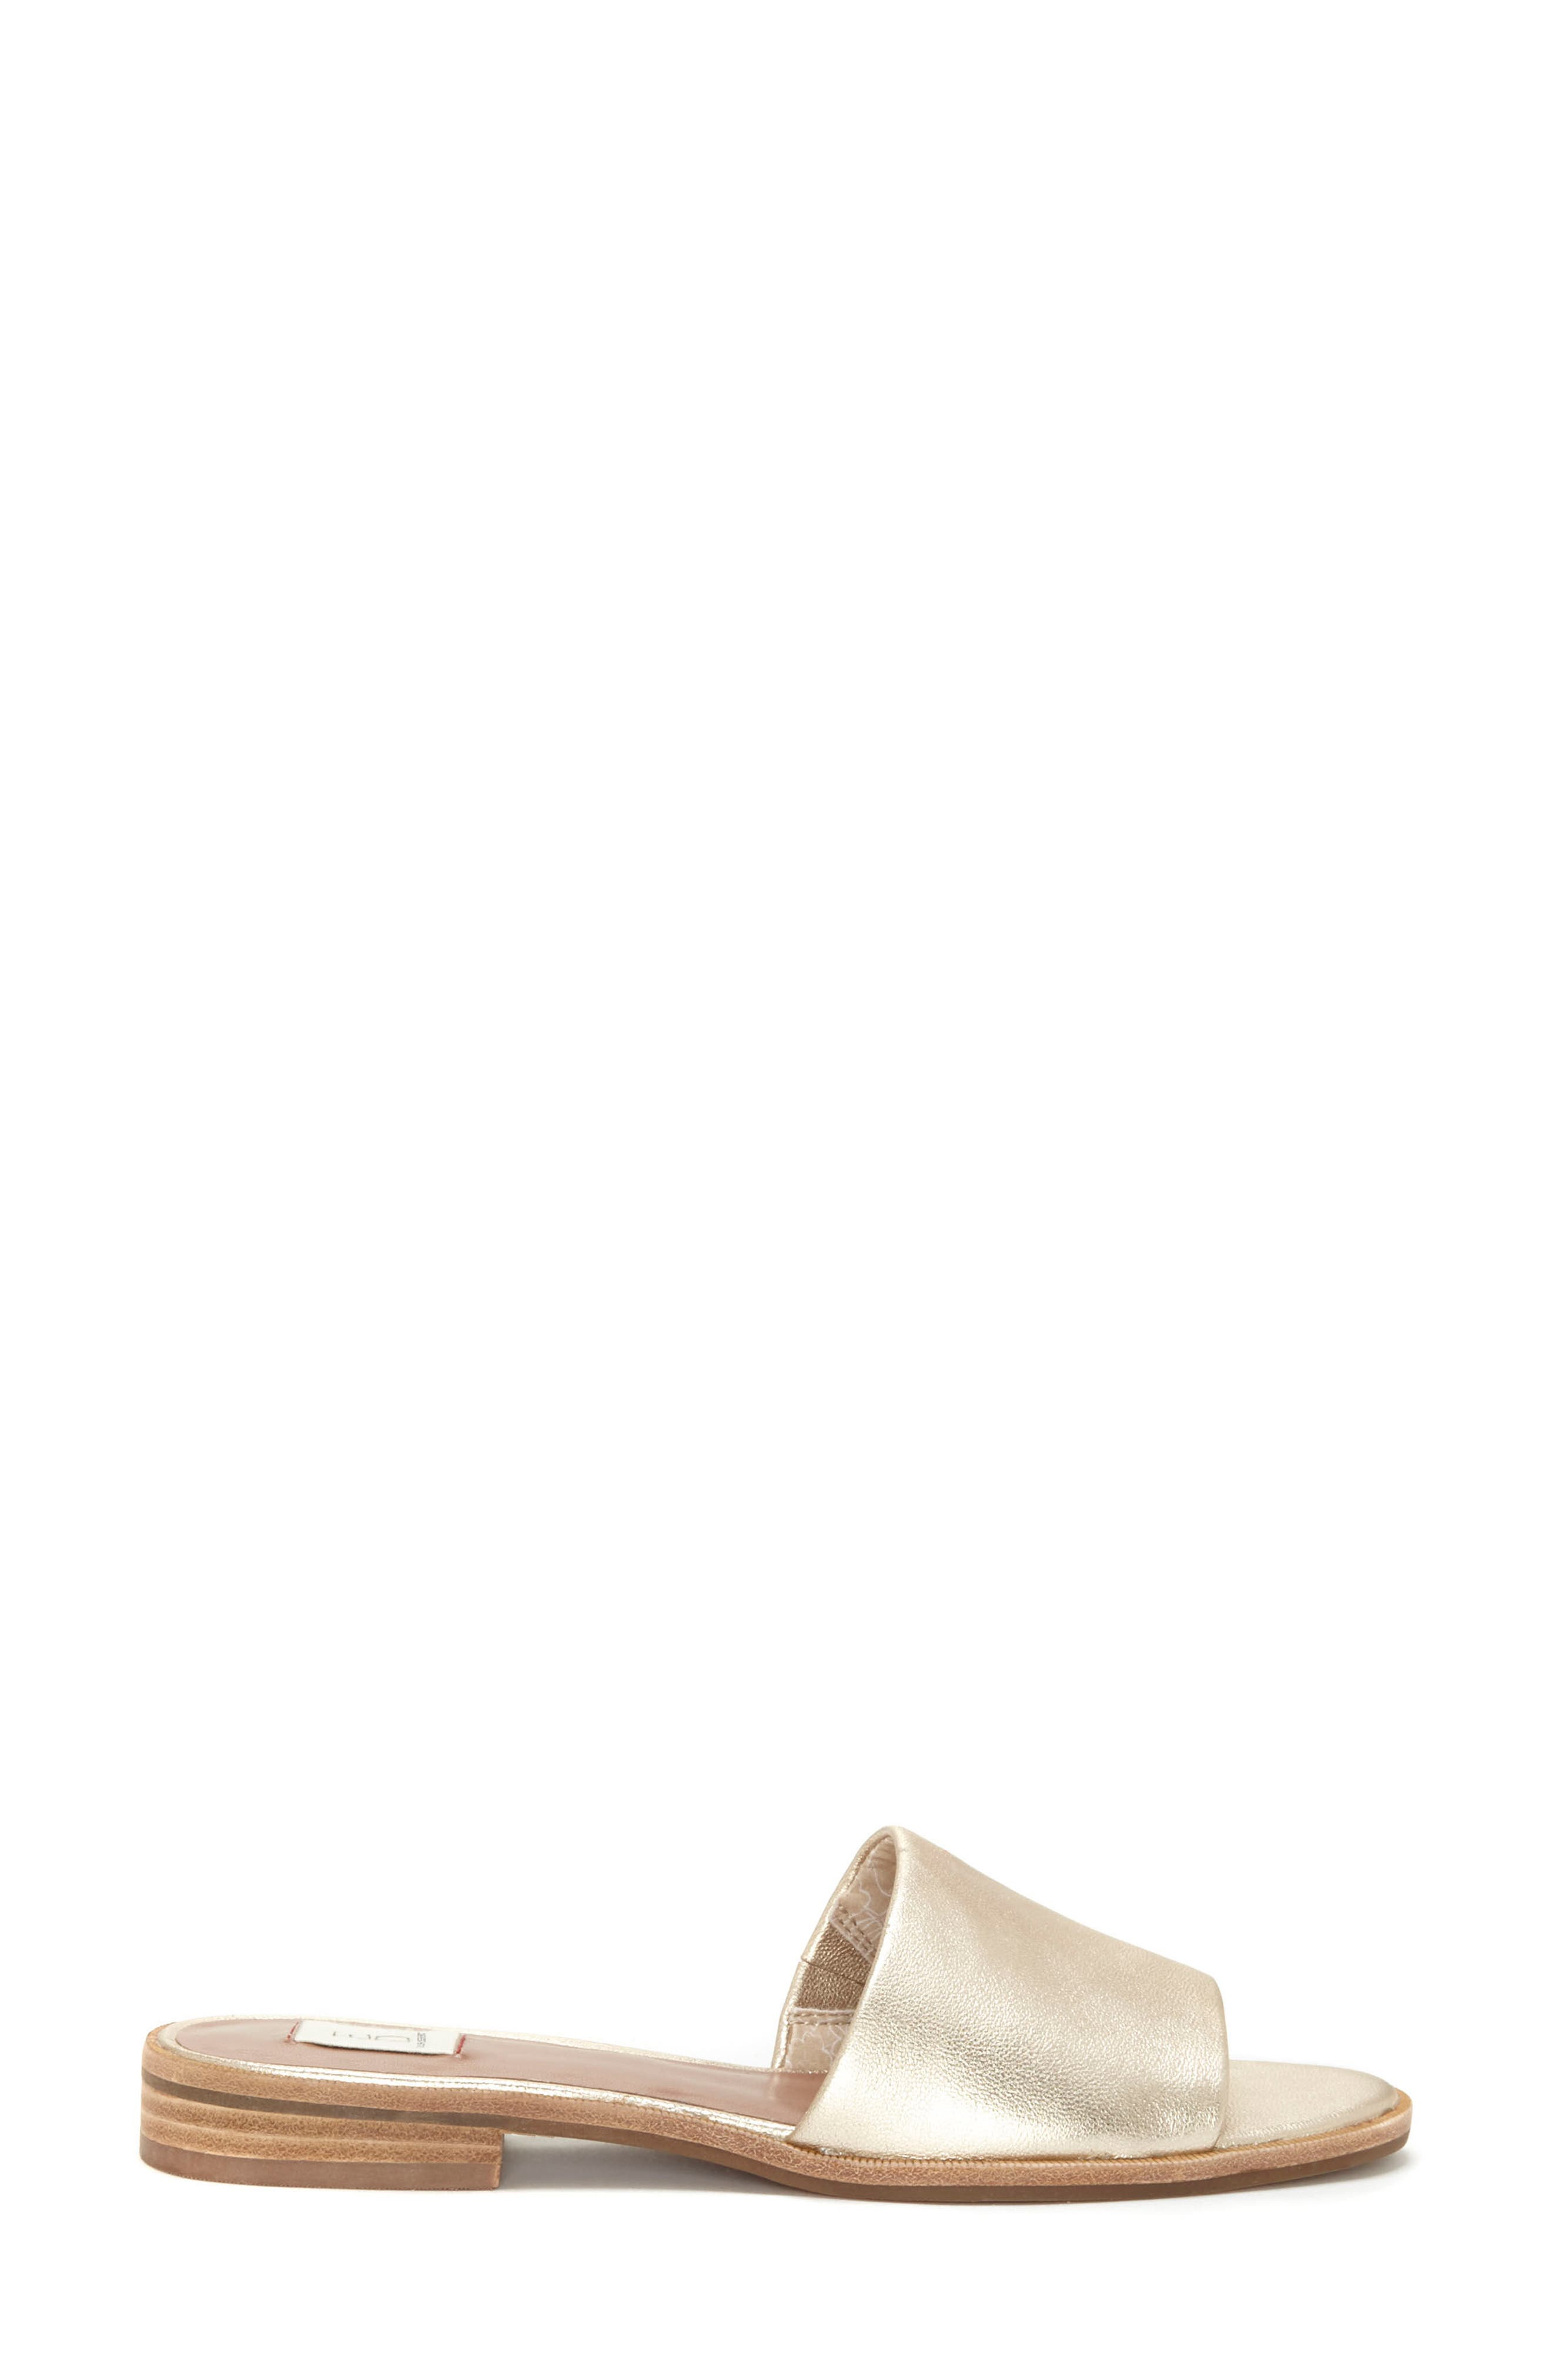 Solay Sandal,                             Alternate thumbnail 3, color,                             Prosecco Leather